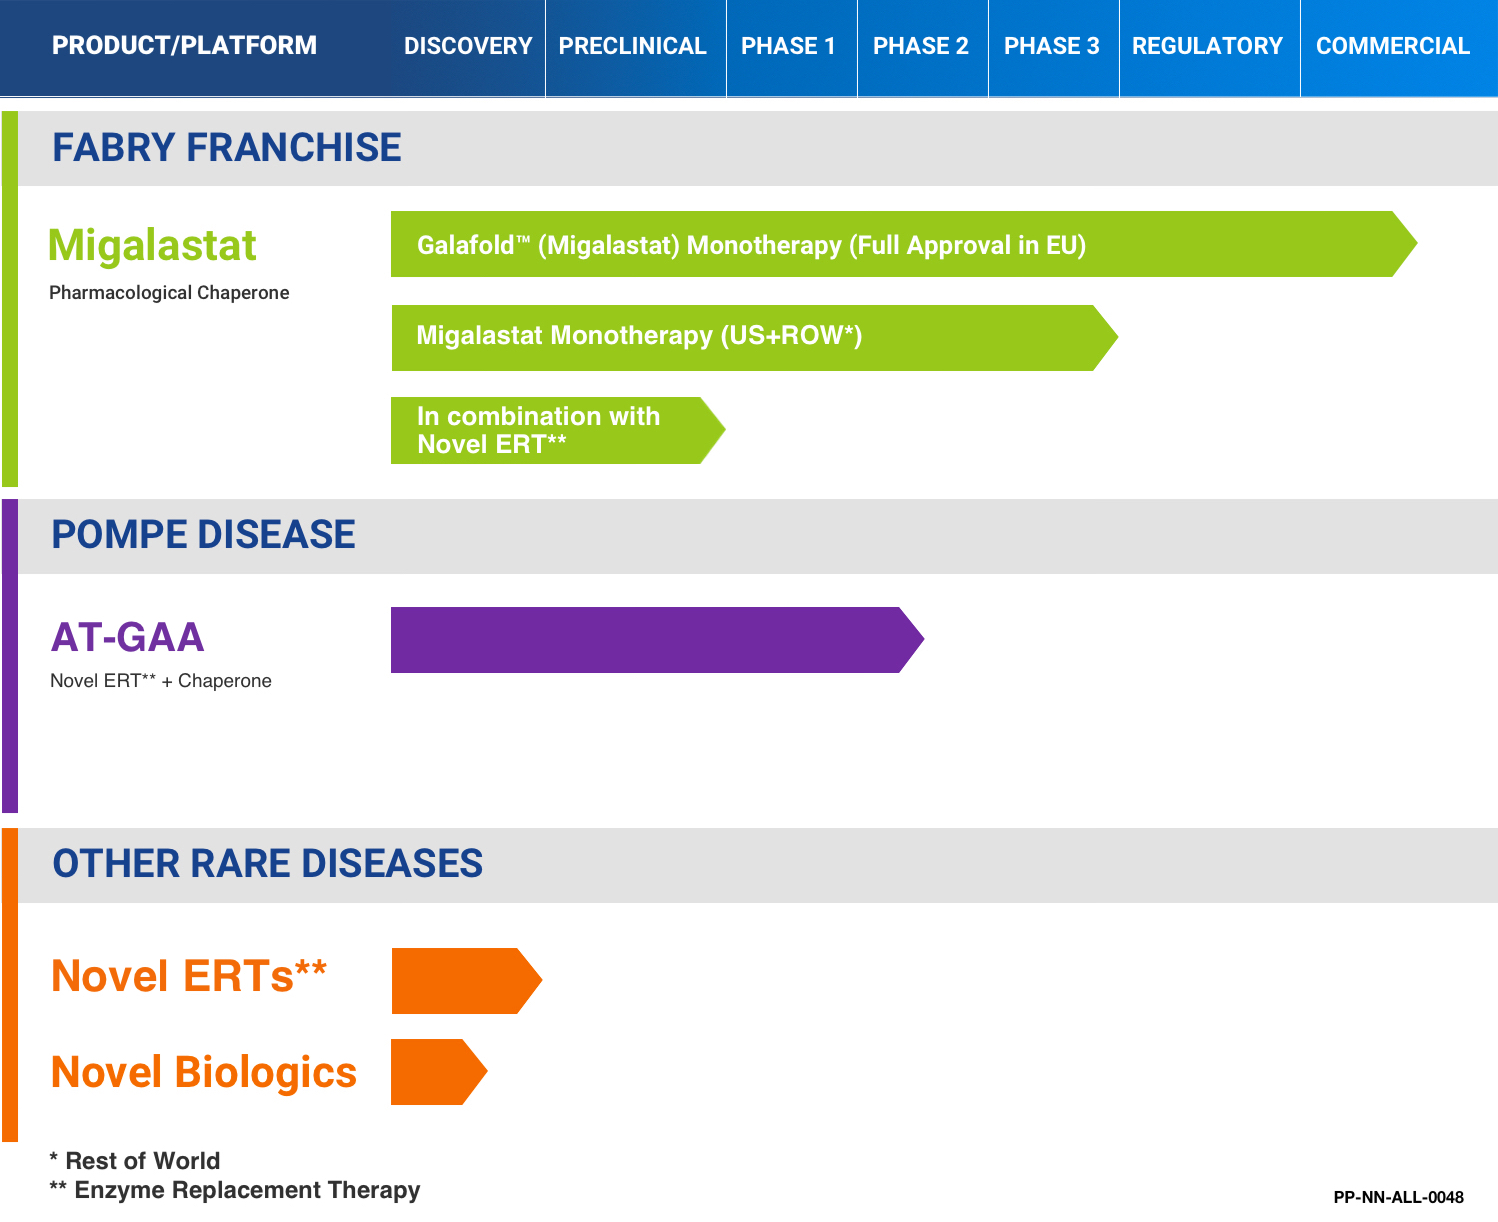 Amicus Therapeutics Development pipeline